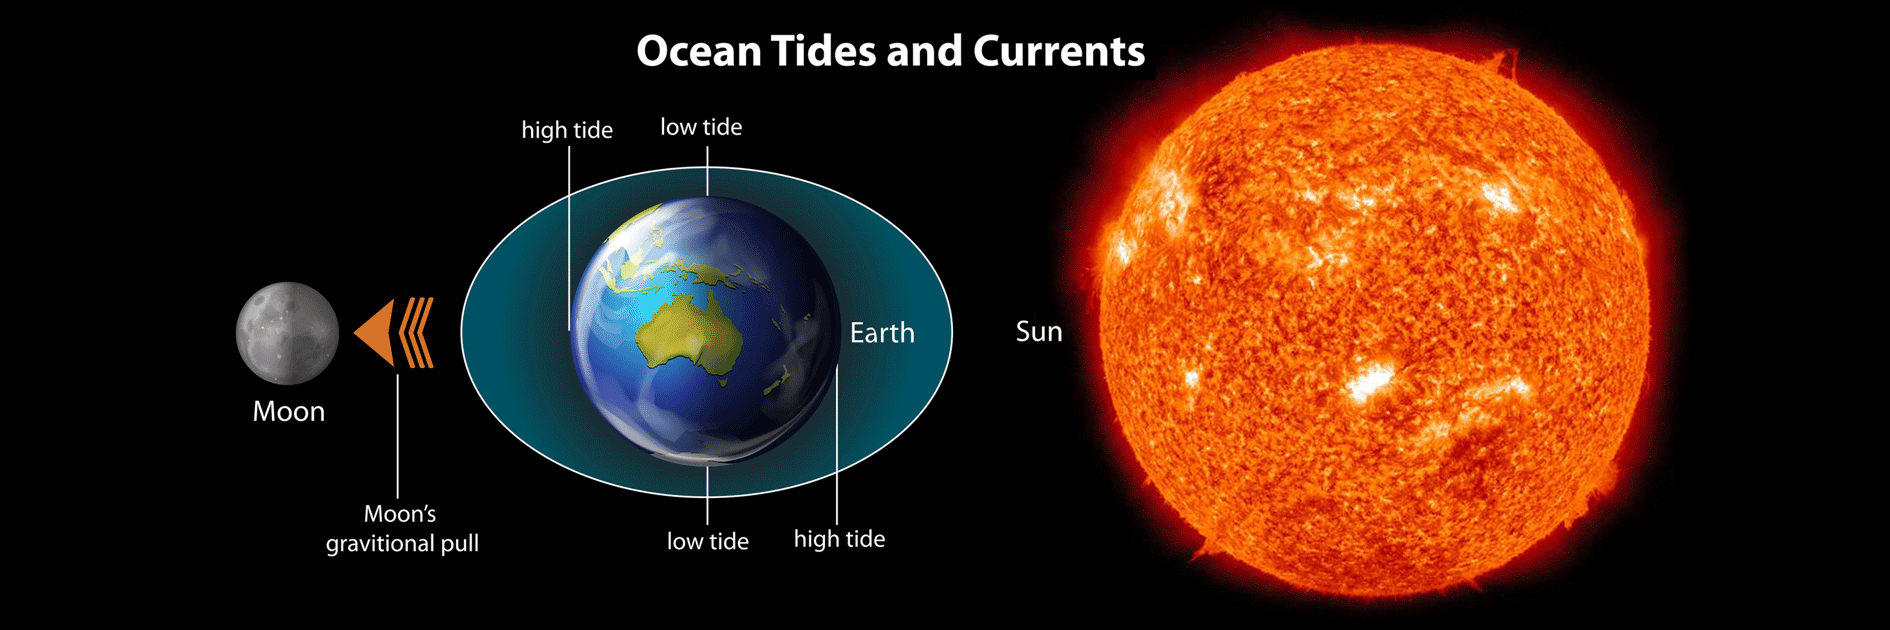 """illustration of moon, earth and sun's gravitational pull, showing how low and high tides happen """"Ocean Tides and Currents"""""""